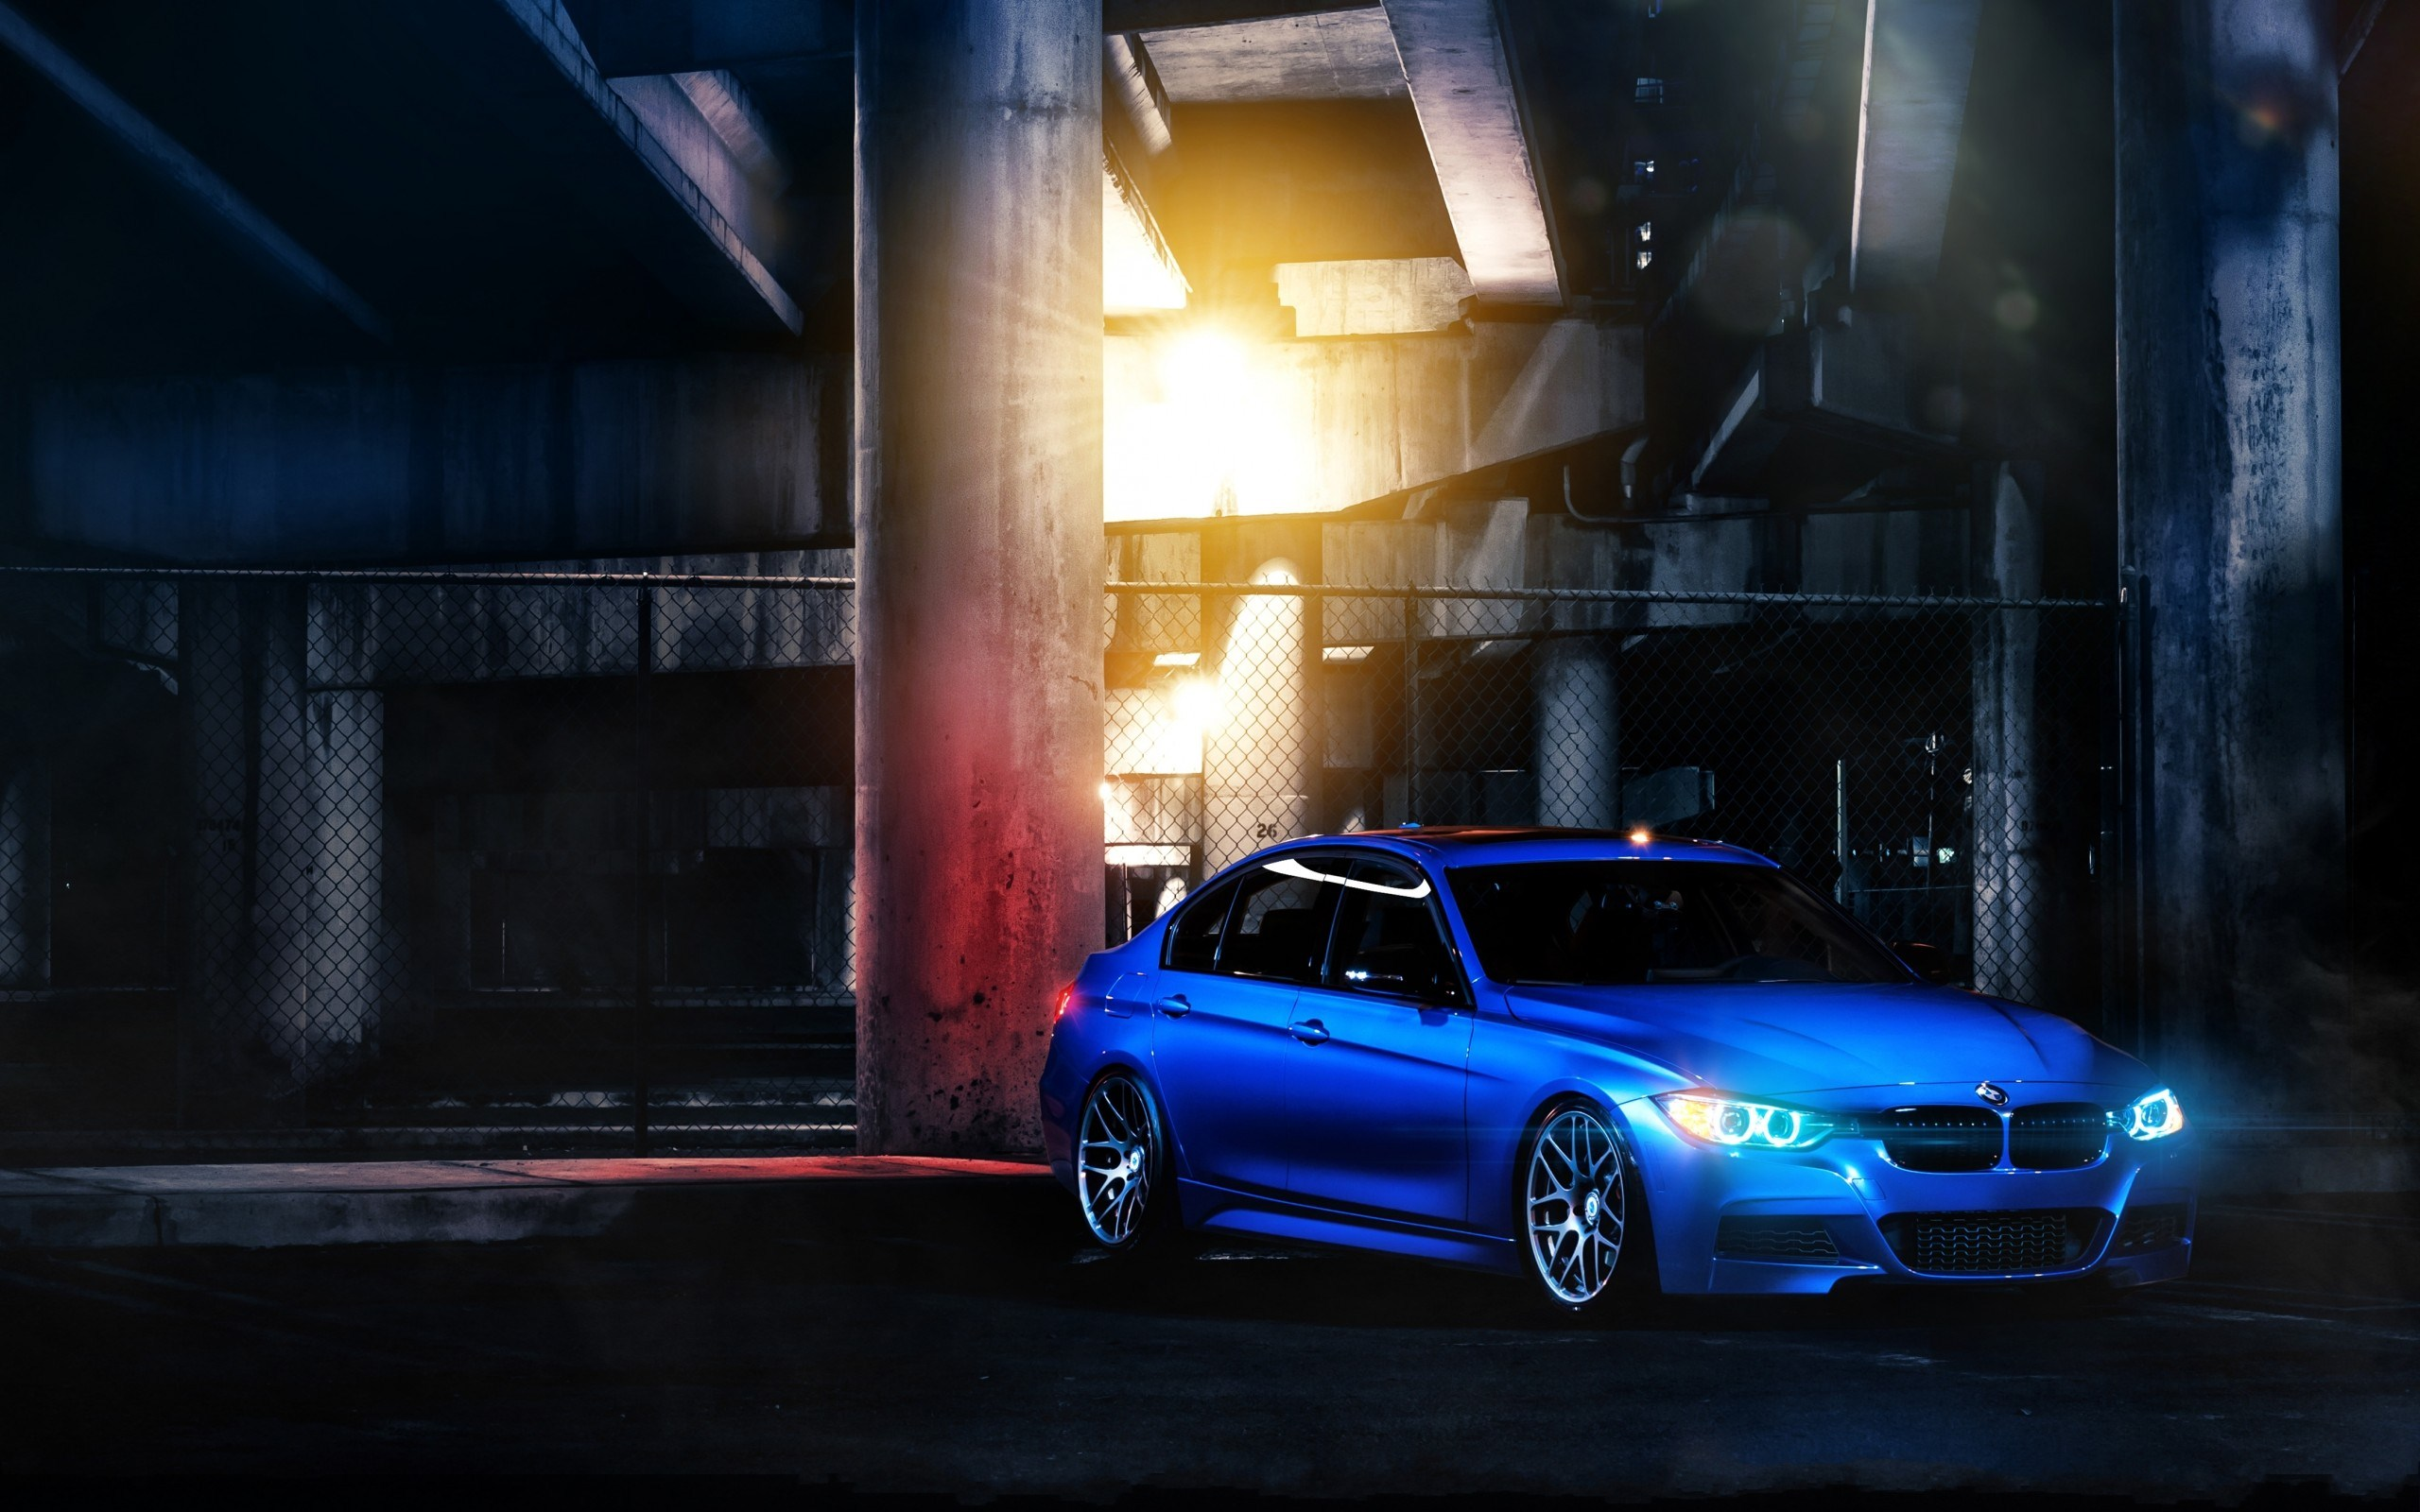 Bmw 335i Wallpapers High Quality Download Free